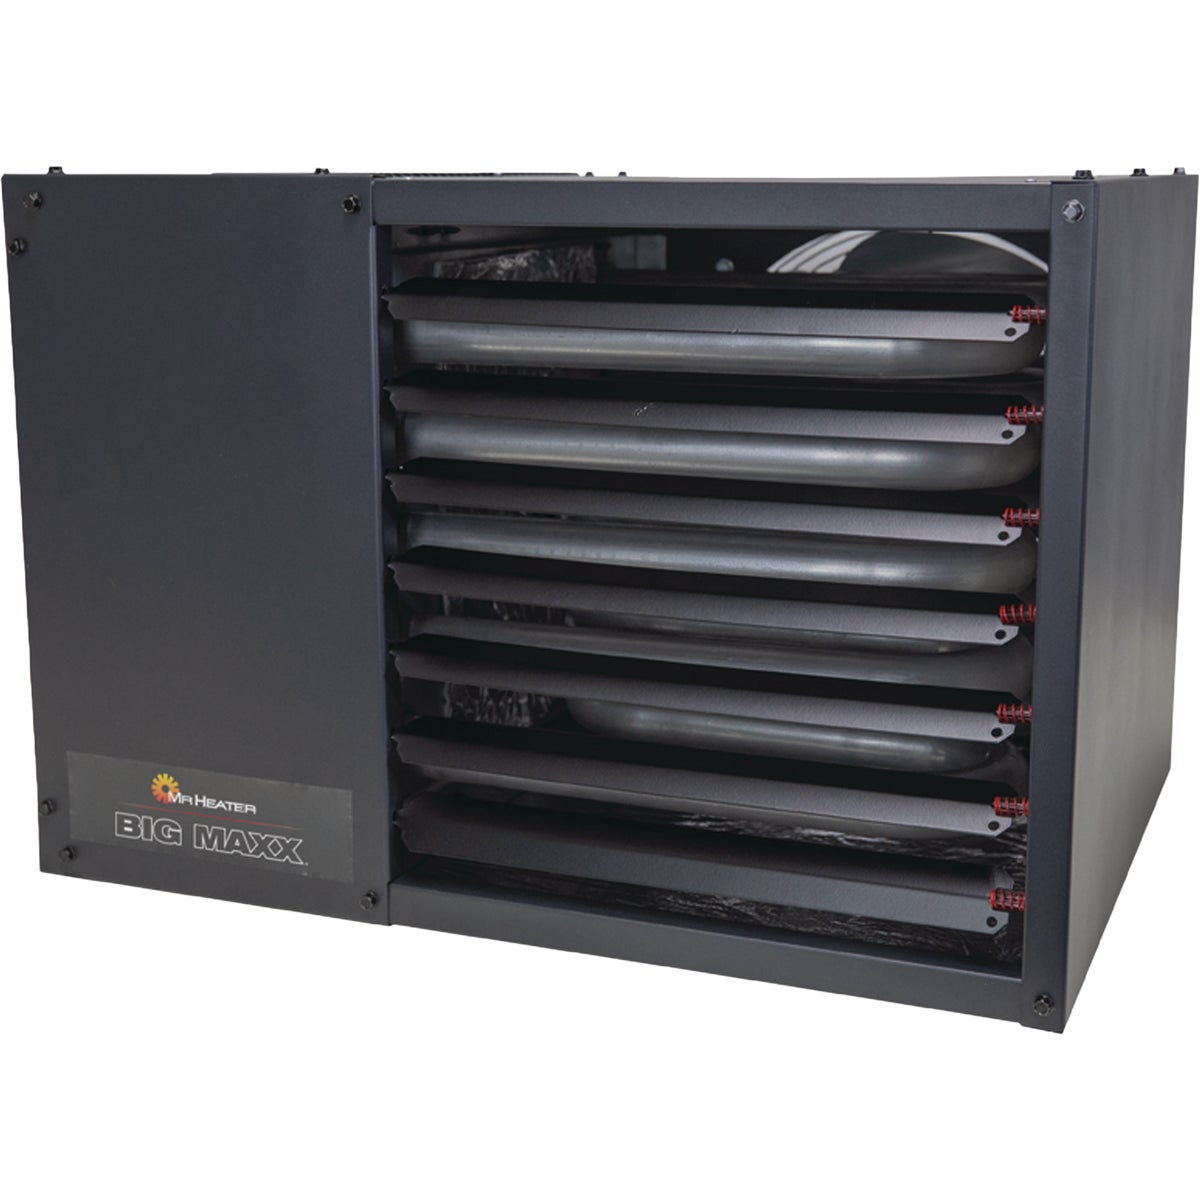 Mr. Heater 75K NG SUSPENDED HEATER F260775